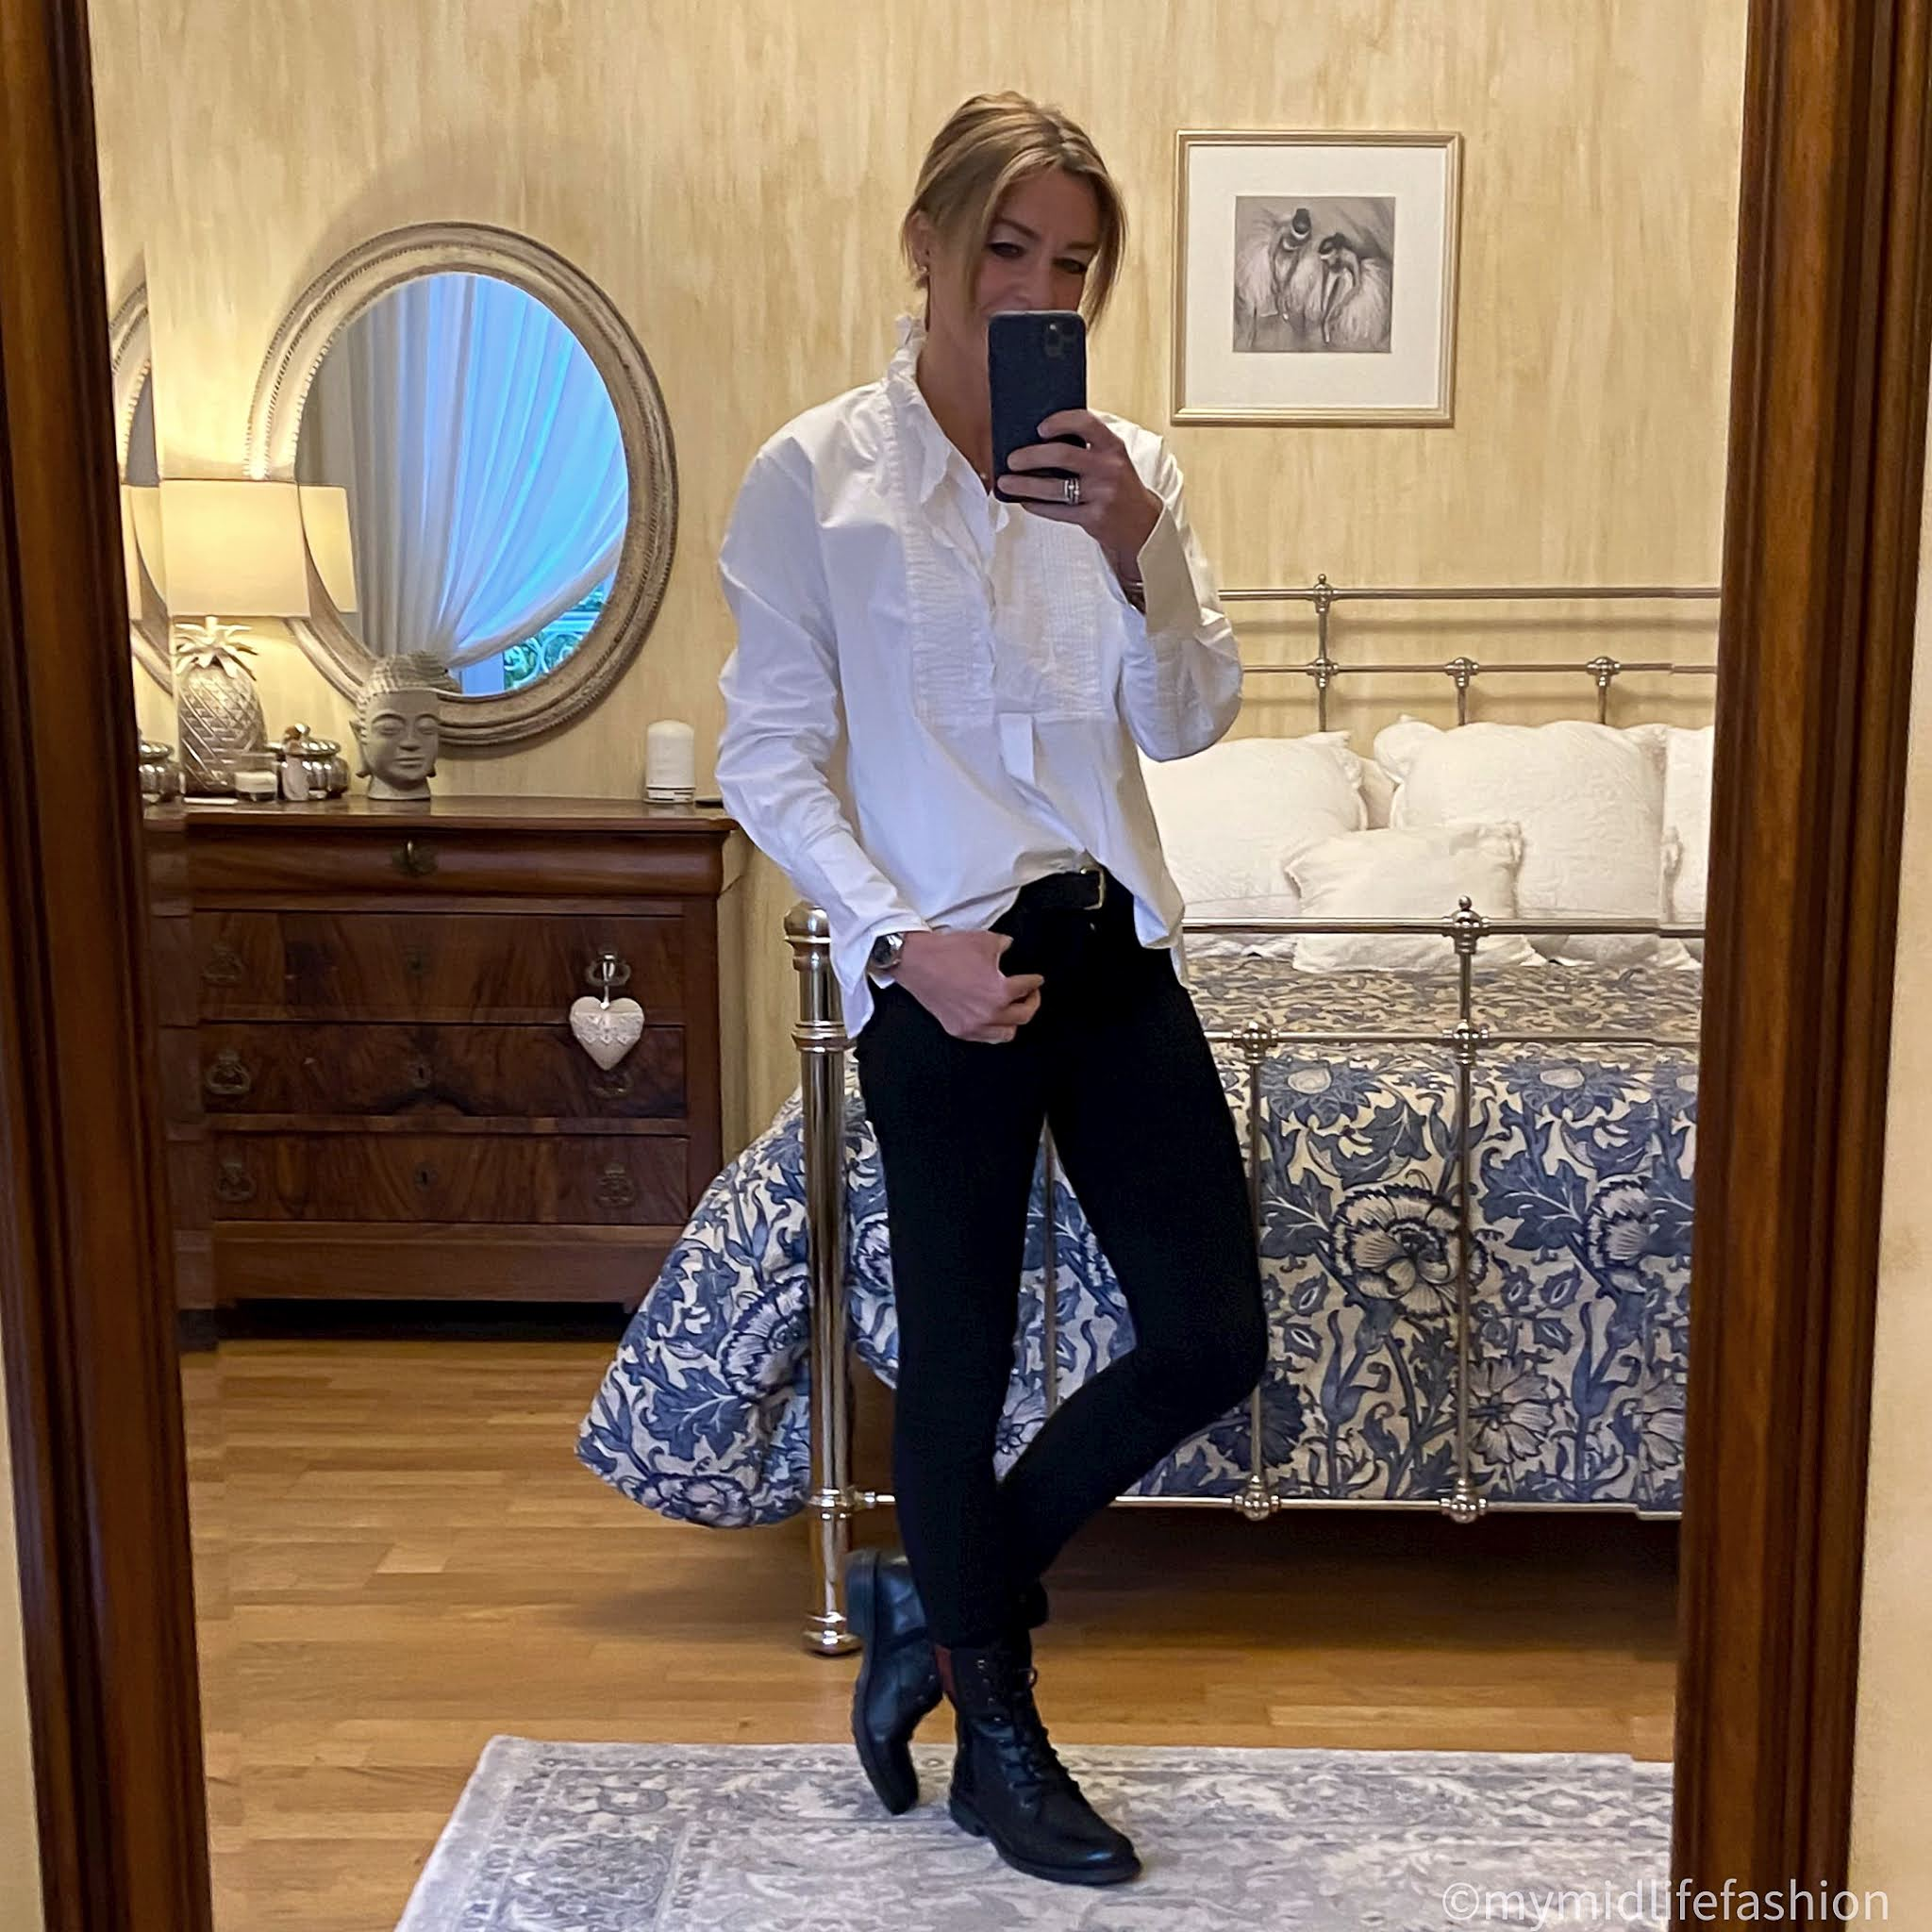 my midlife fashion, Isabel Marant Etoile frill detail blouse, boden classic leather belt, j crew 8 inch toothpick skinny jeans, Carl Scarpa paulette ankle boots